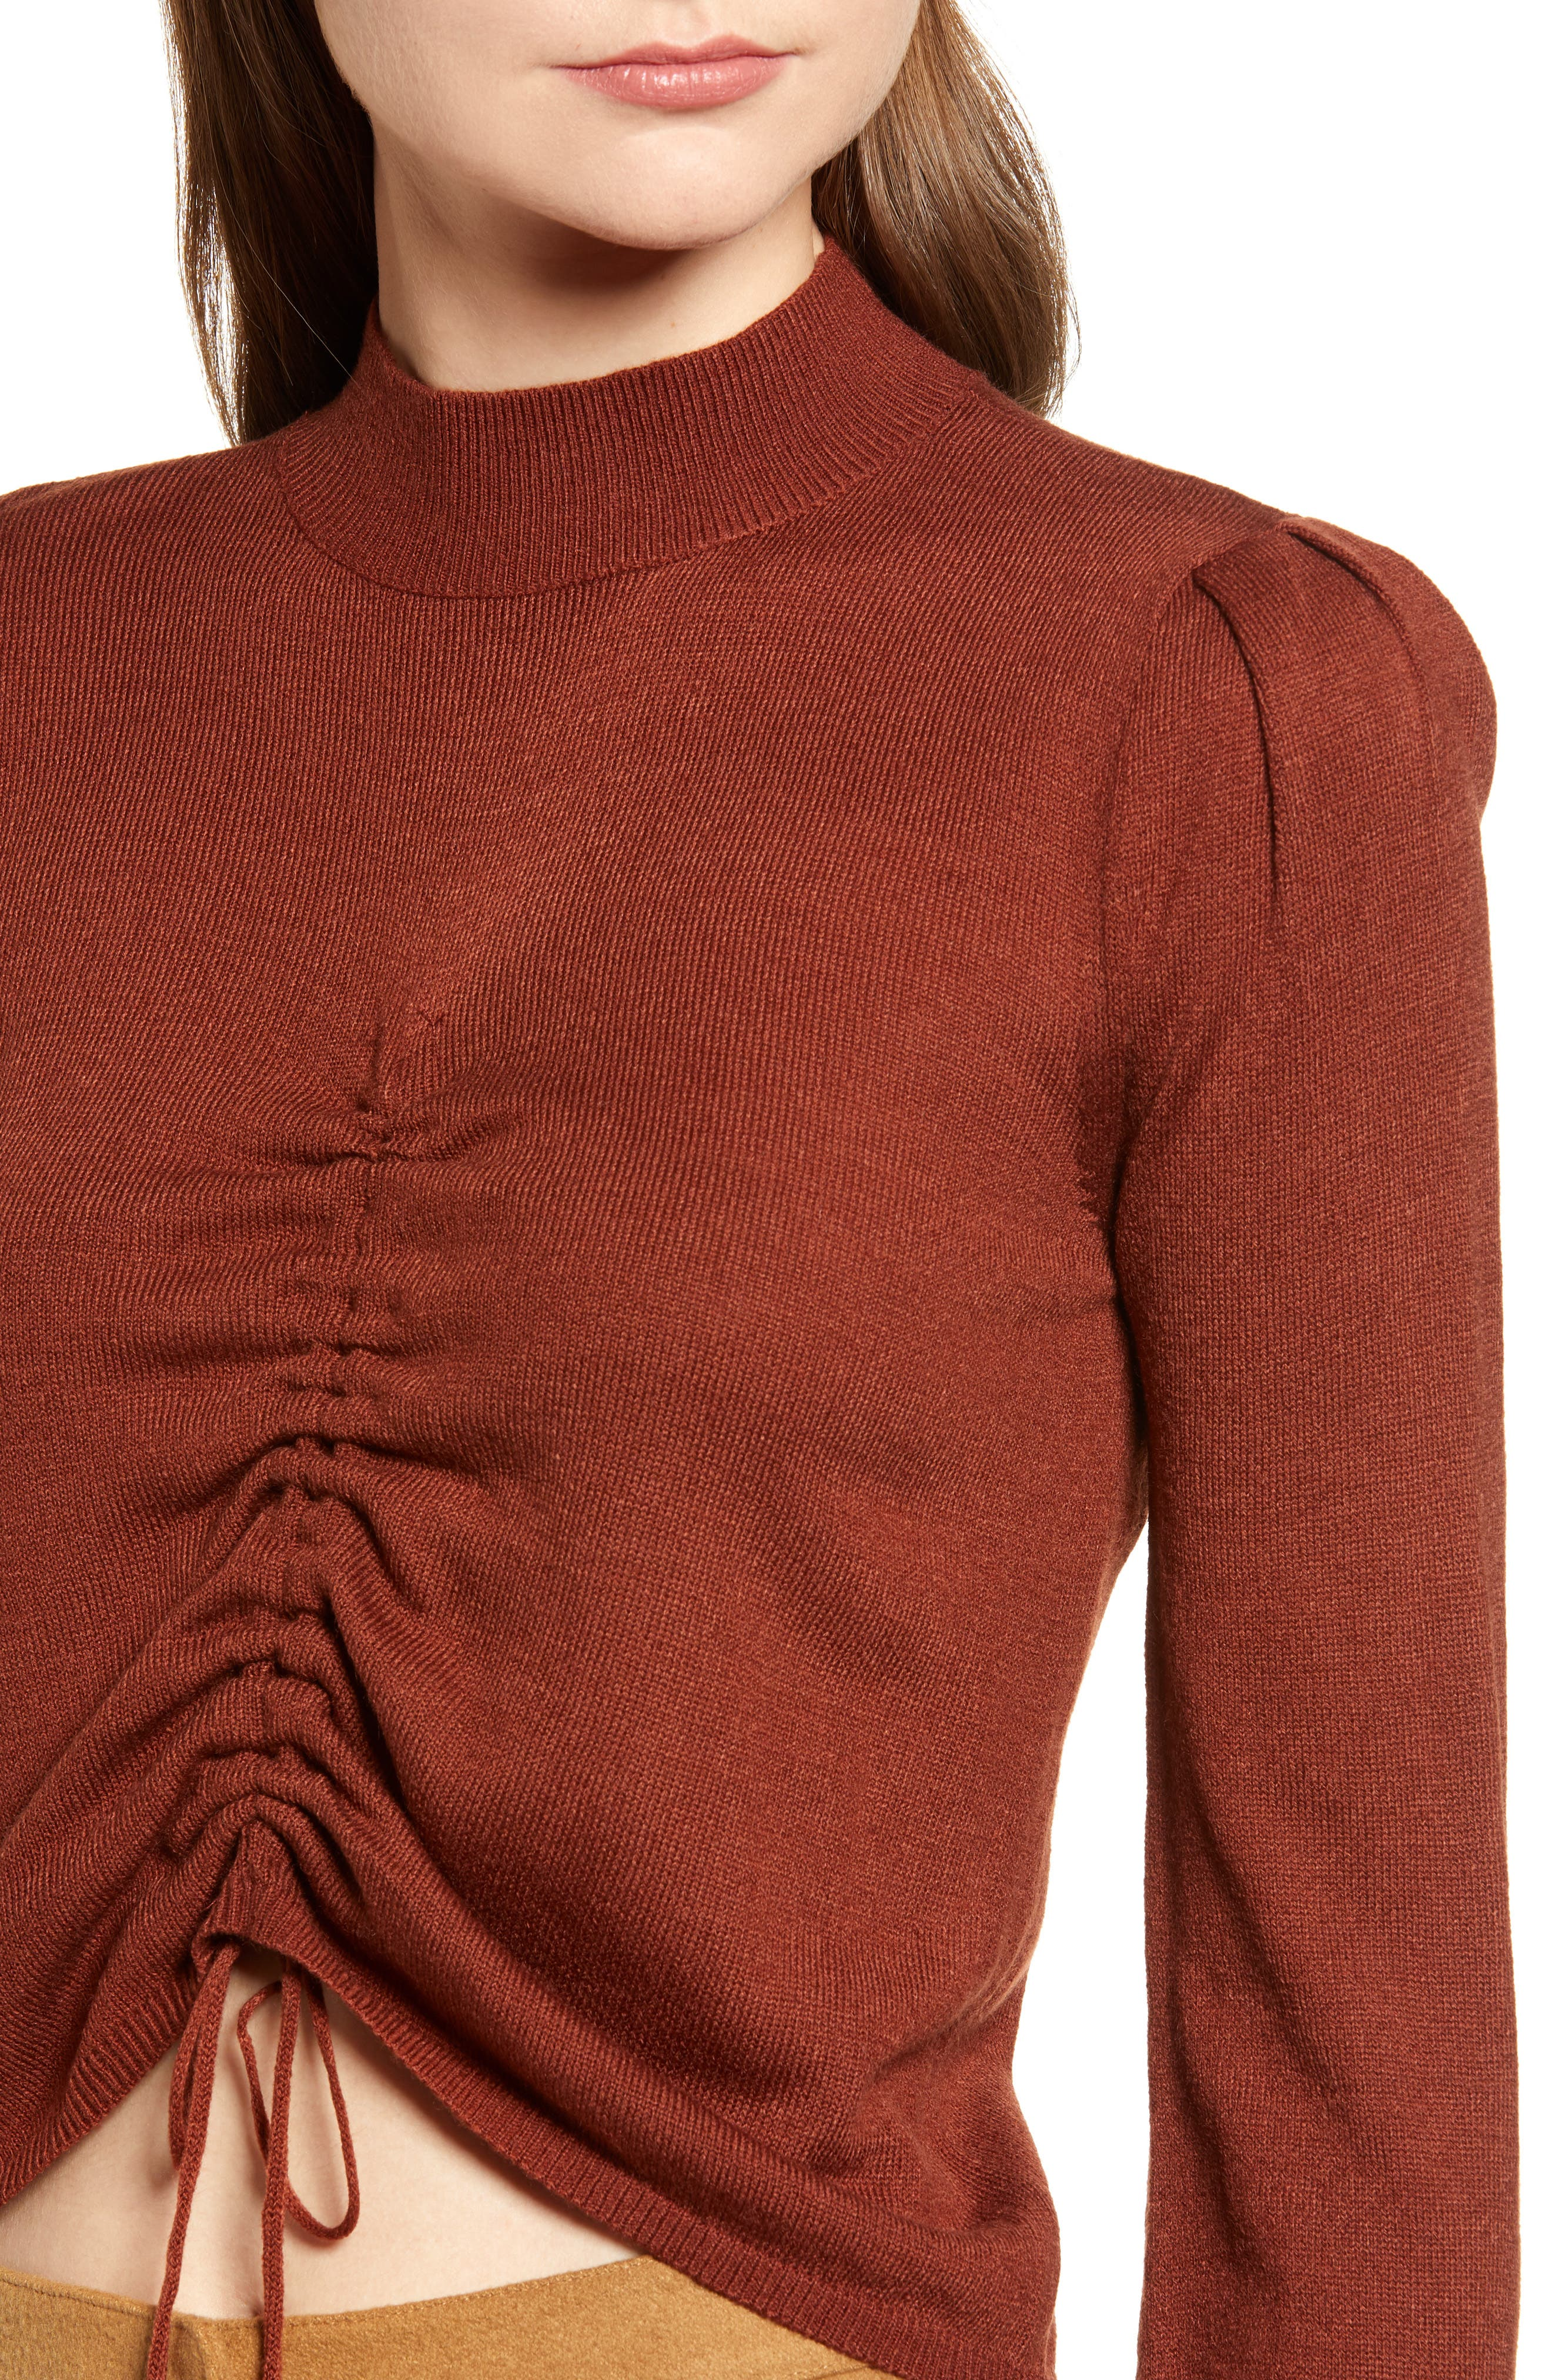 Chriselle Lim Madison Ruched Sweater,                             Alternate thumbnail 5, color,                             RUST